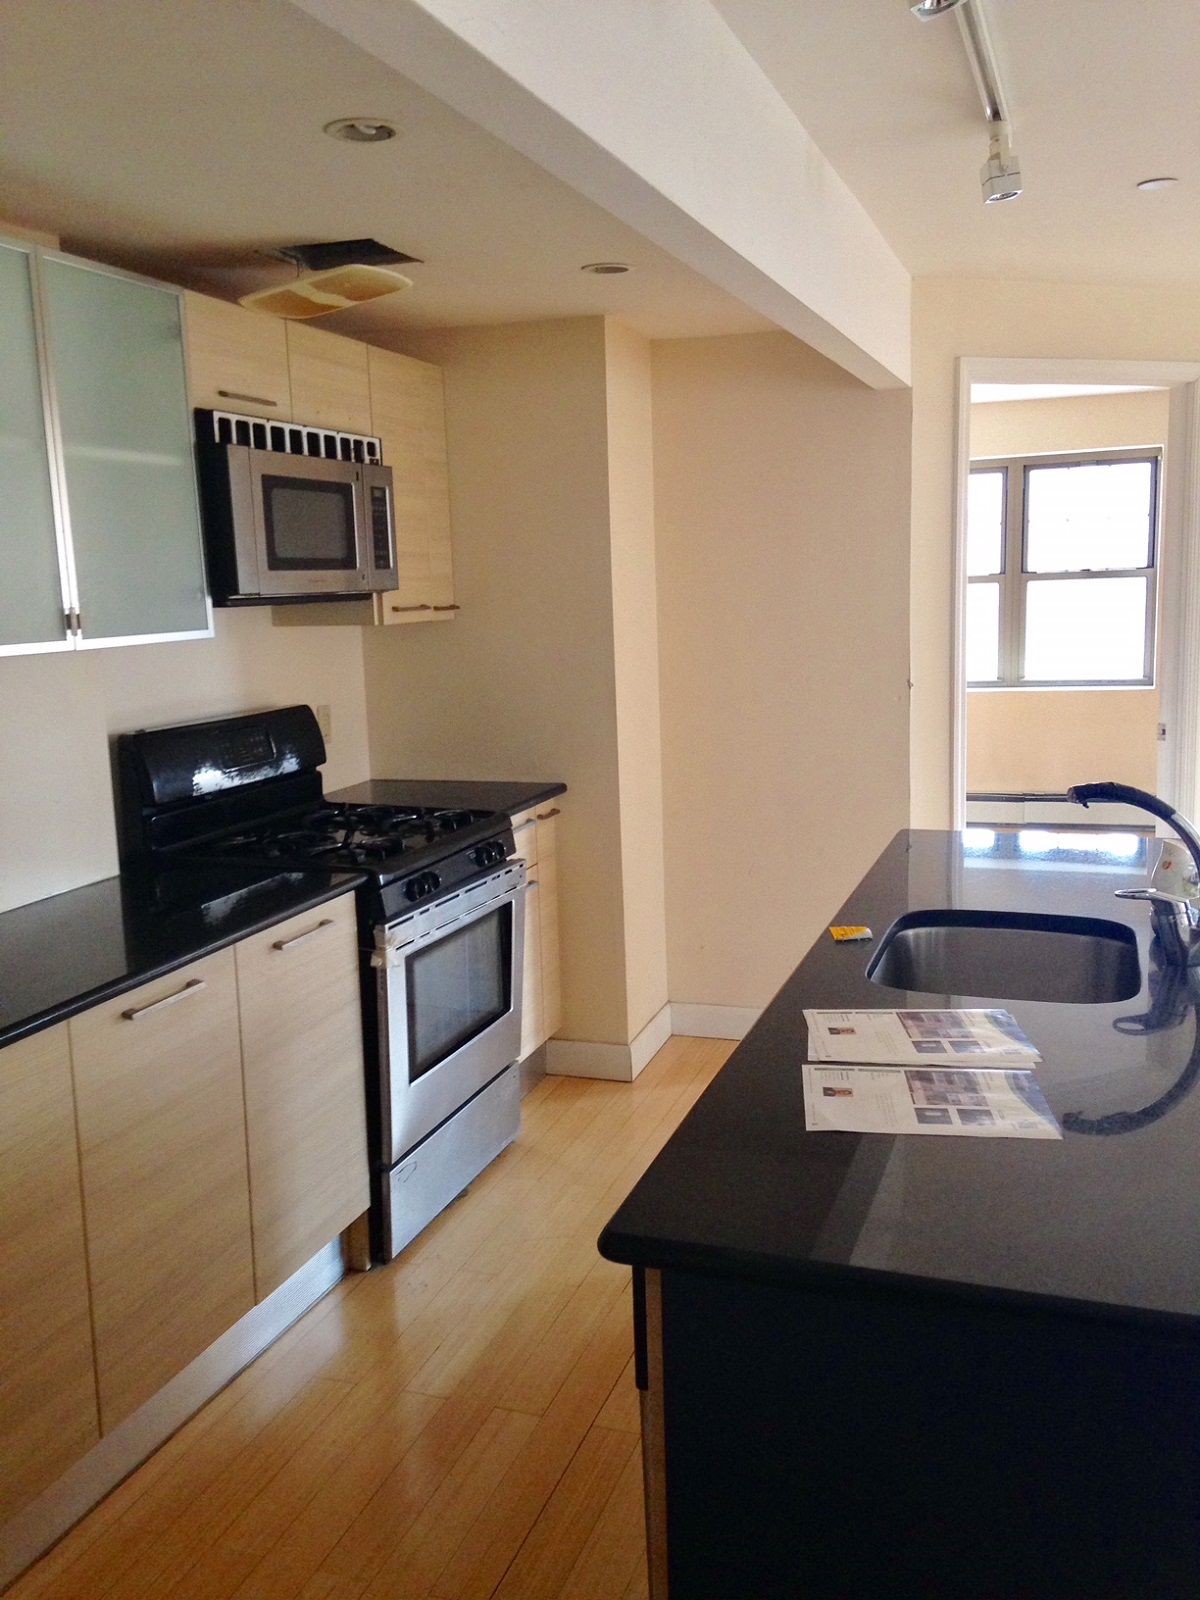 Apartment in Kew Gardens - 117th Street  Queens, NY 11415